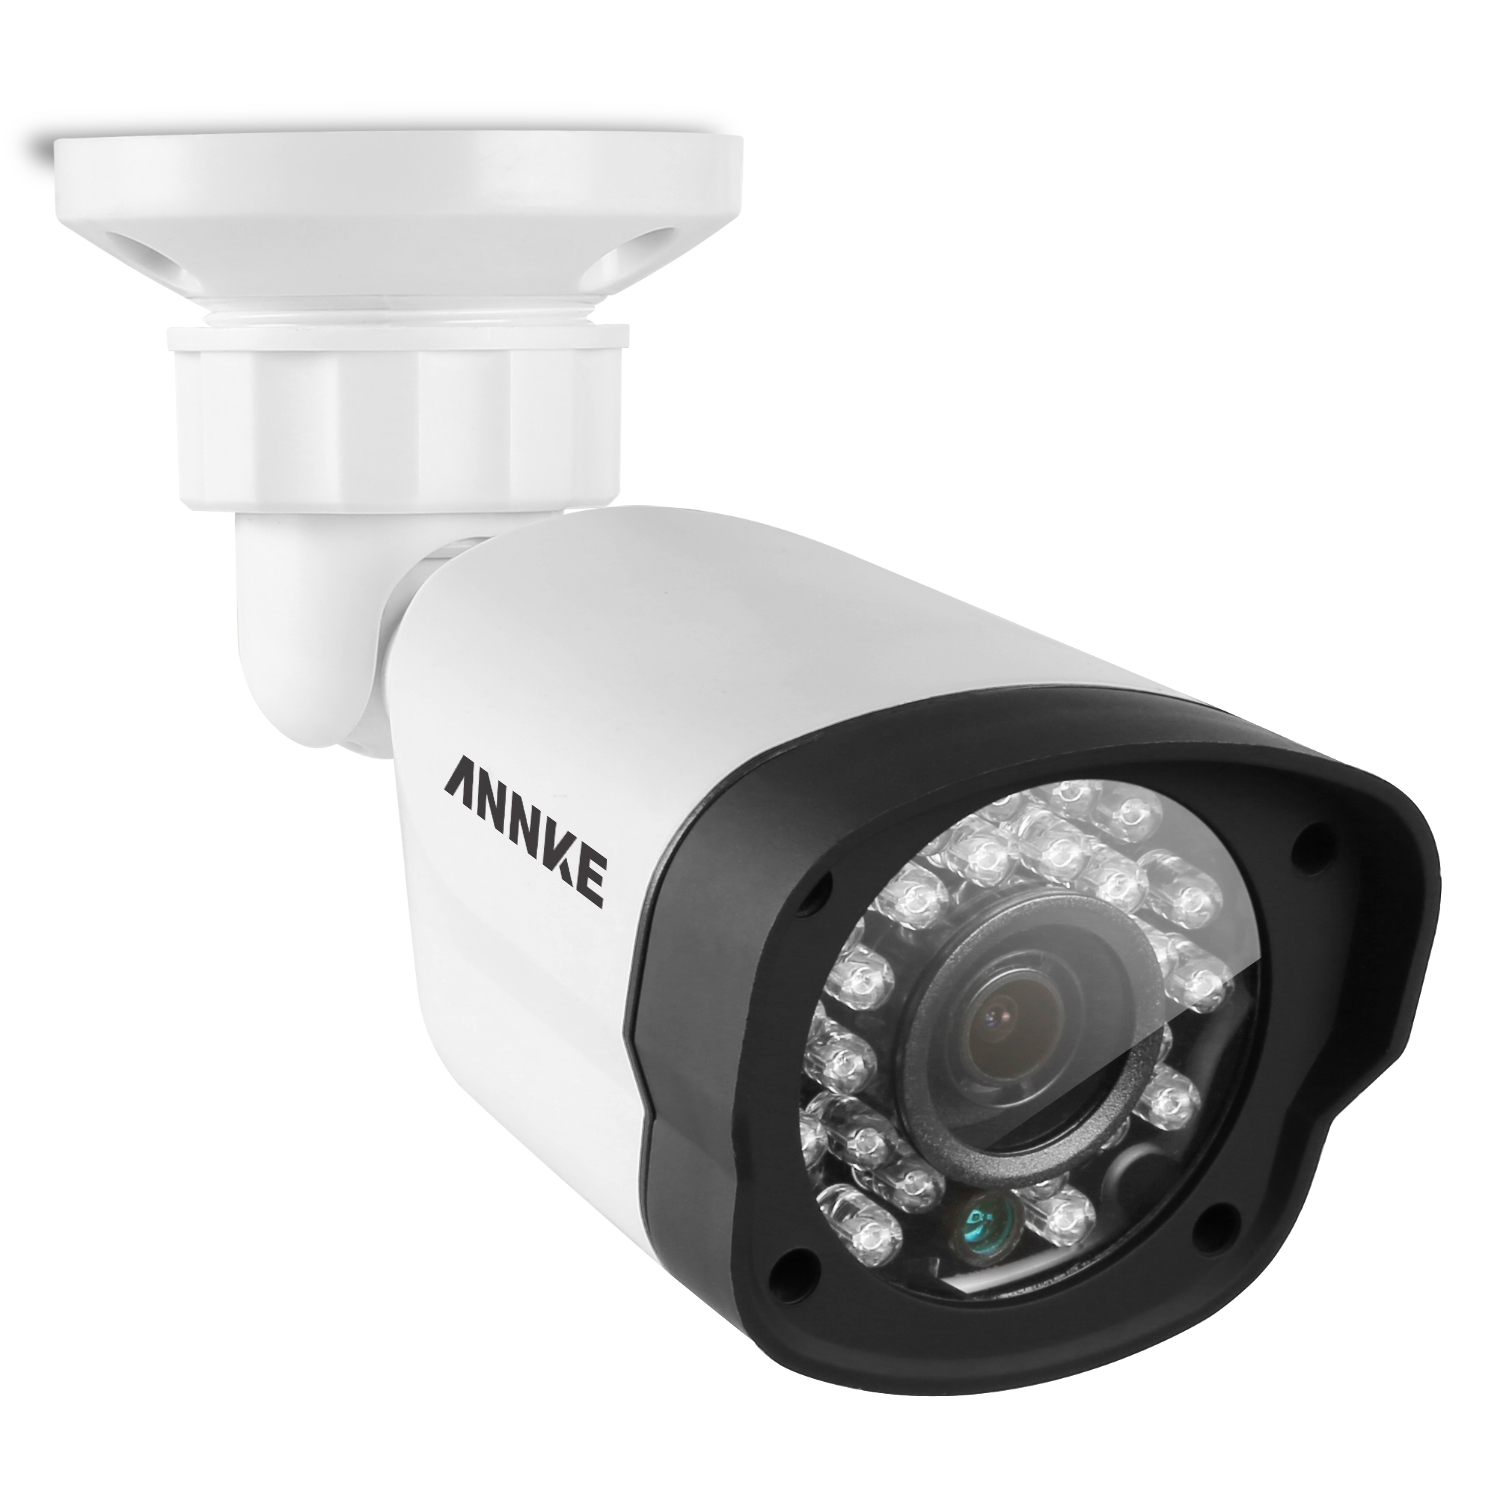 ANNKE 1080P HD 4IN1 CCTV Security Camera with Weatherproof Housing and 66ft IR Night Vision CCTV Surveillance Camera<br>